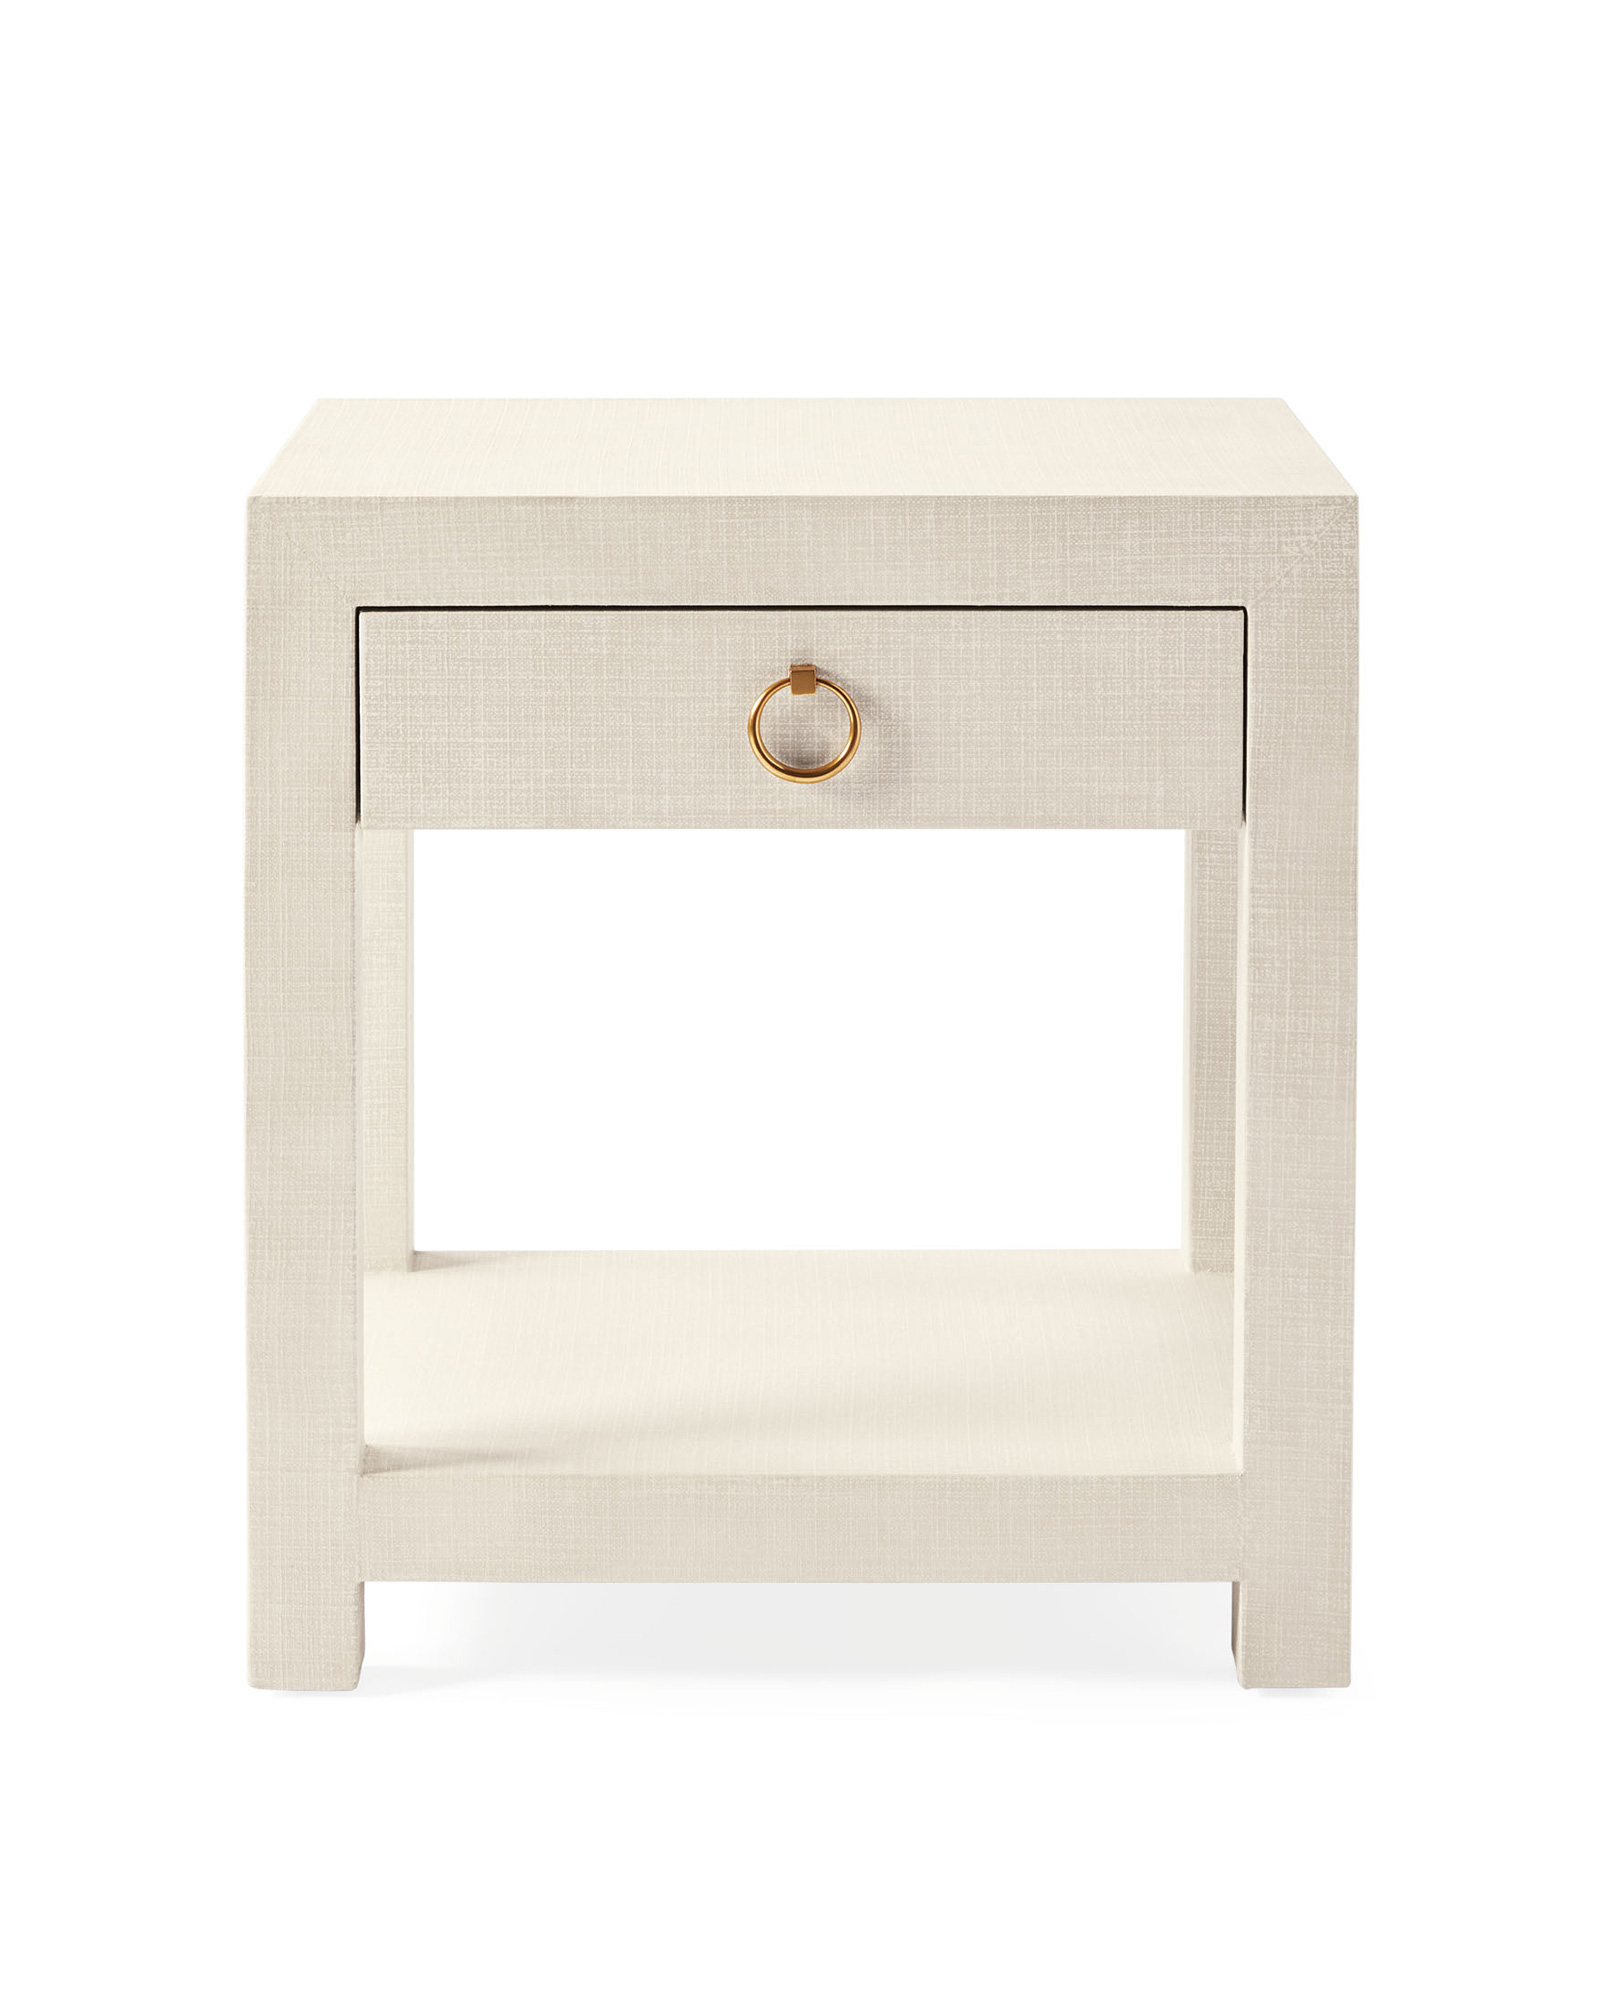 Driftway 1-Drawer Nightstand, Chalk